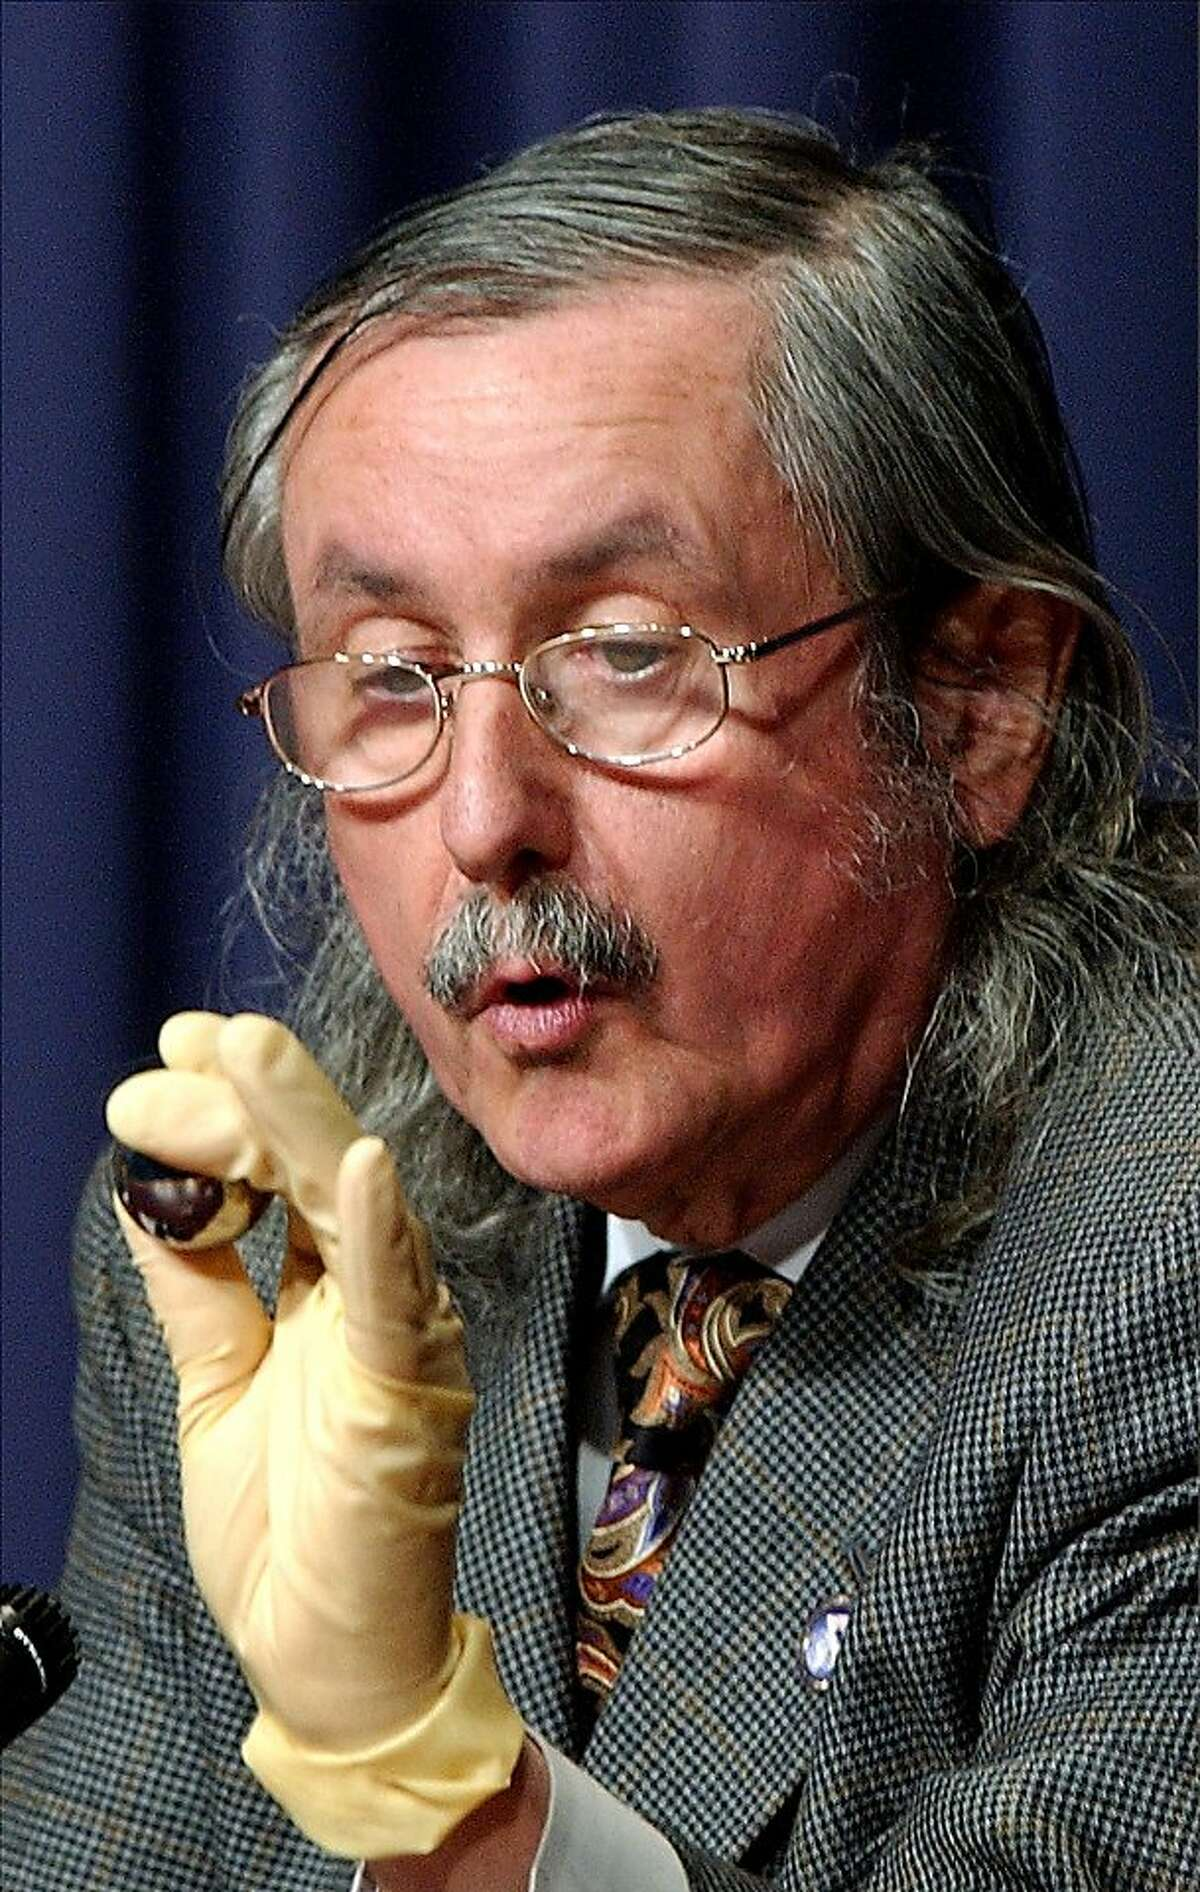 Francis Everitt of Stanford University holds a gyroscope during a briefing in Washington, Friday, April 2, 2004.